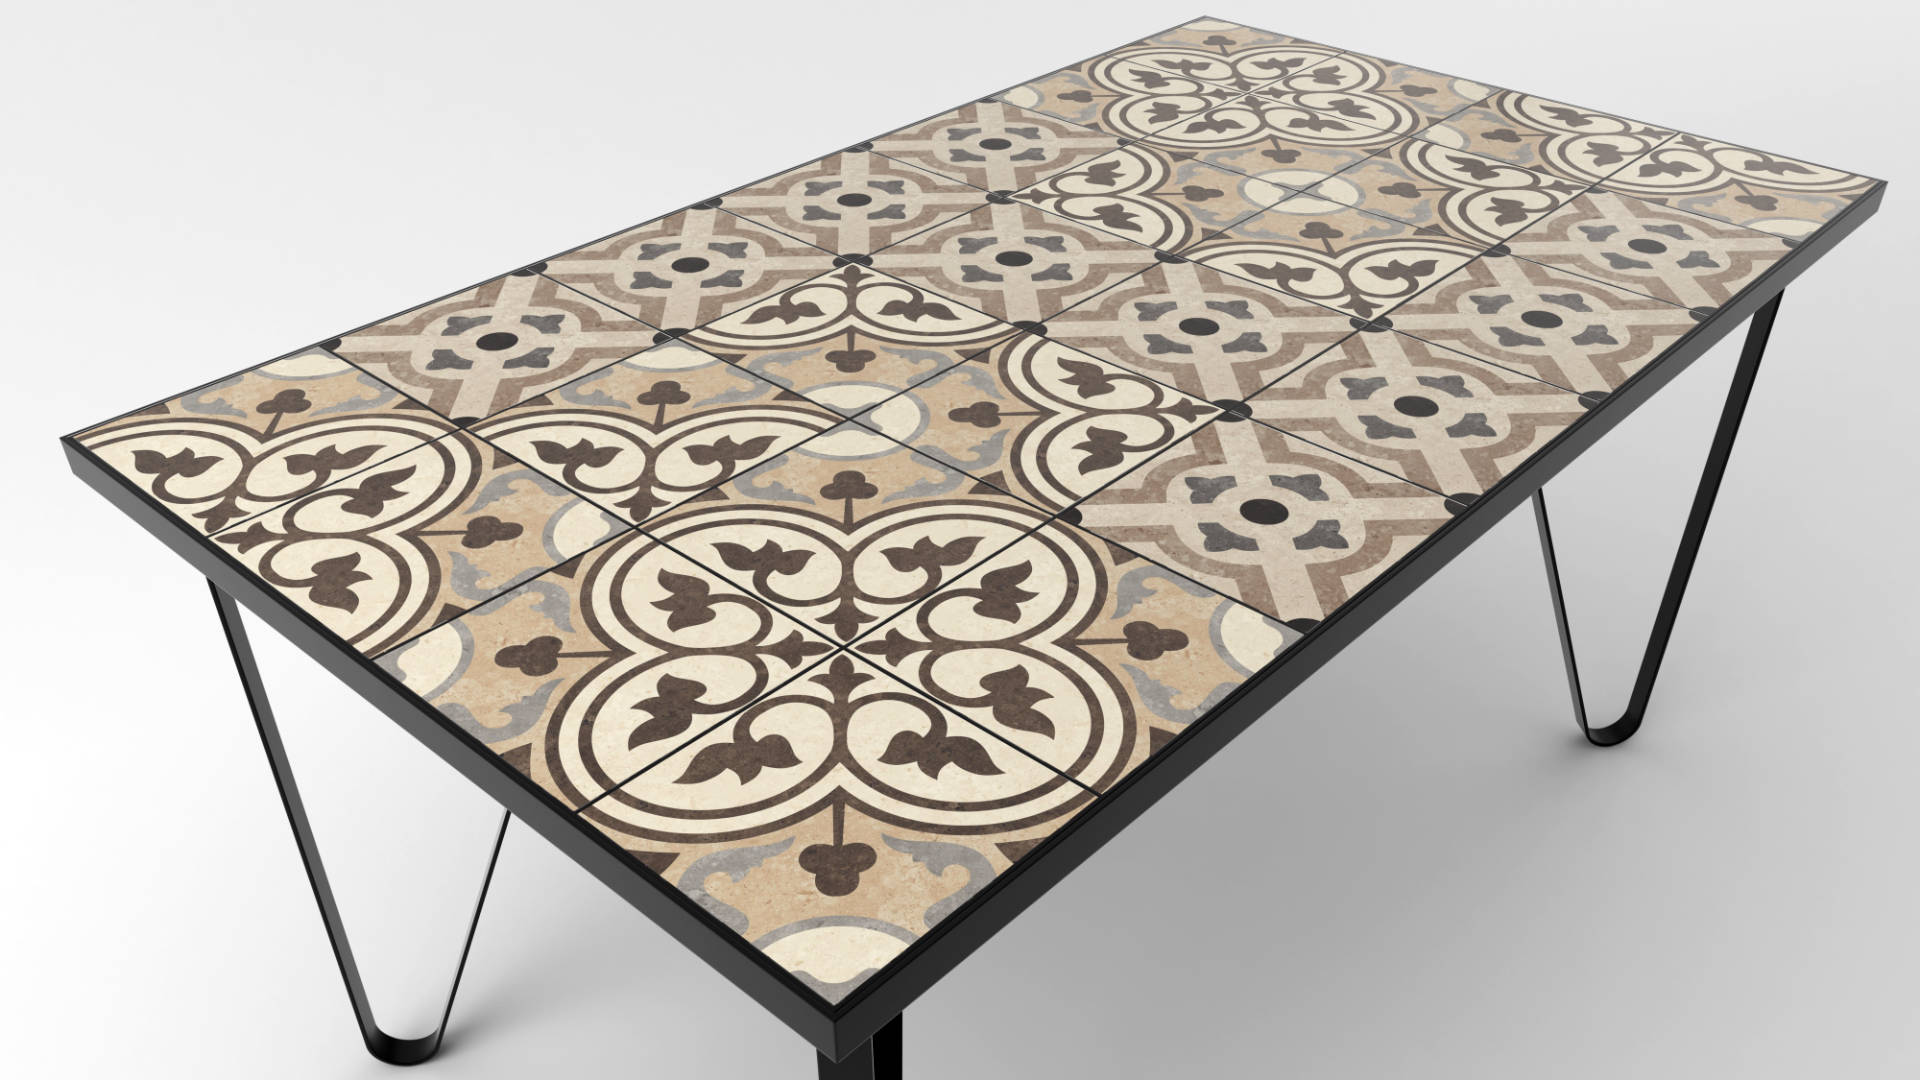 Ceramic tile table with black legs and italian tiles - Carola